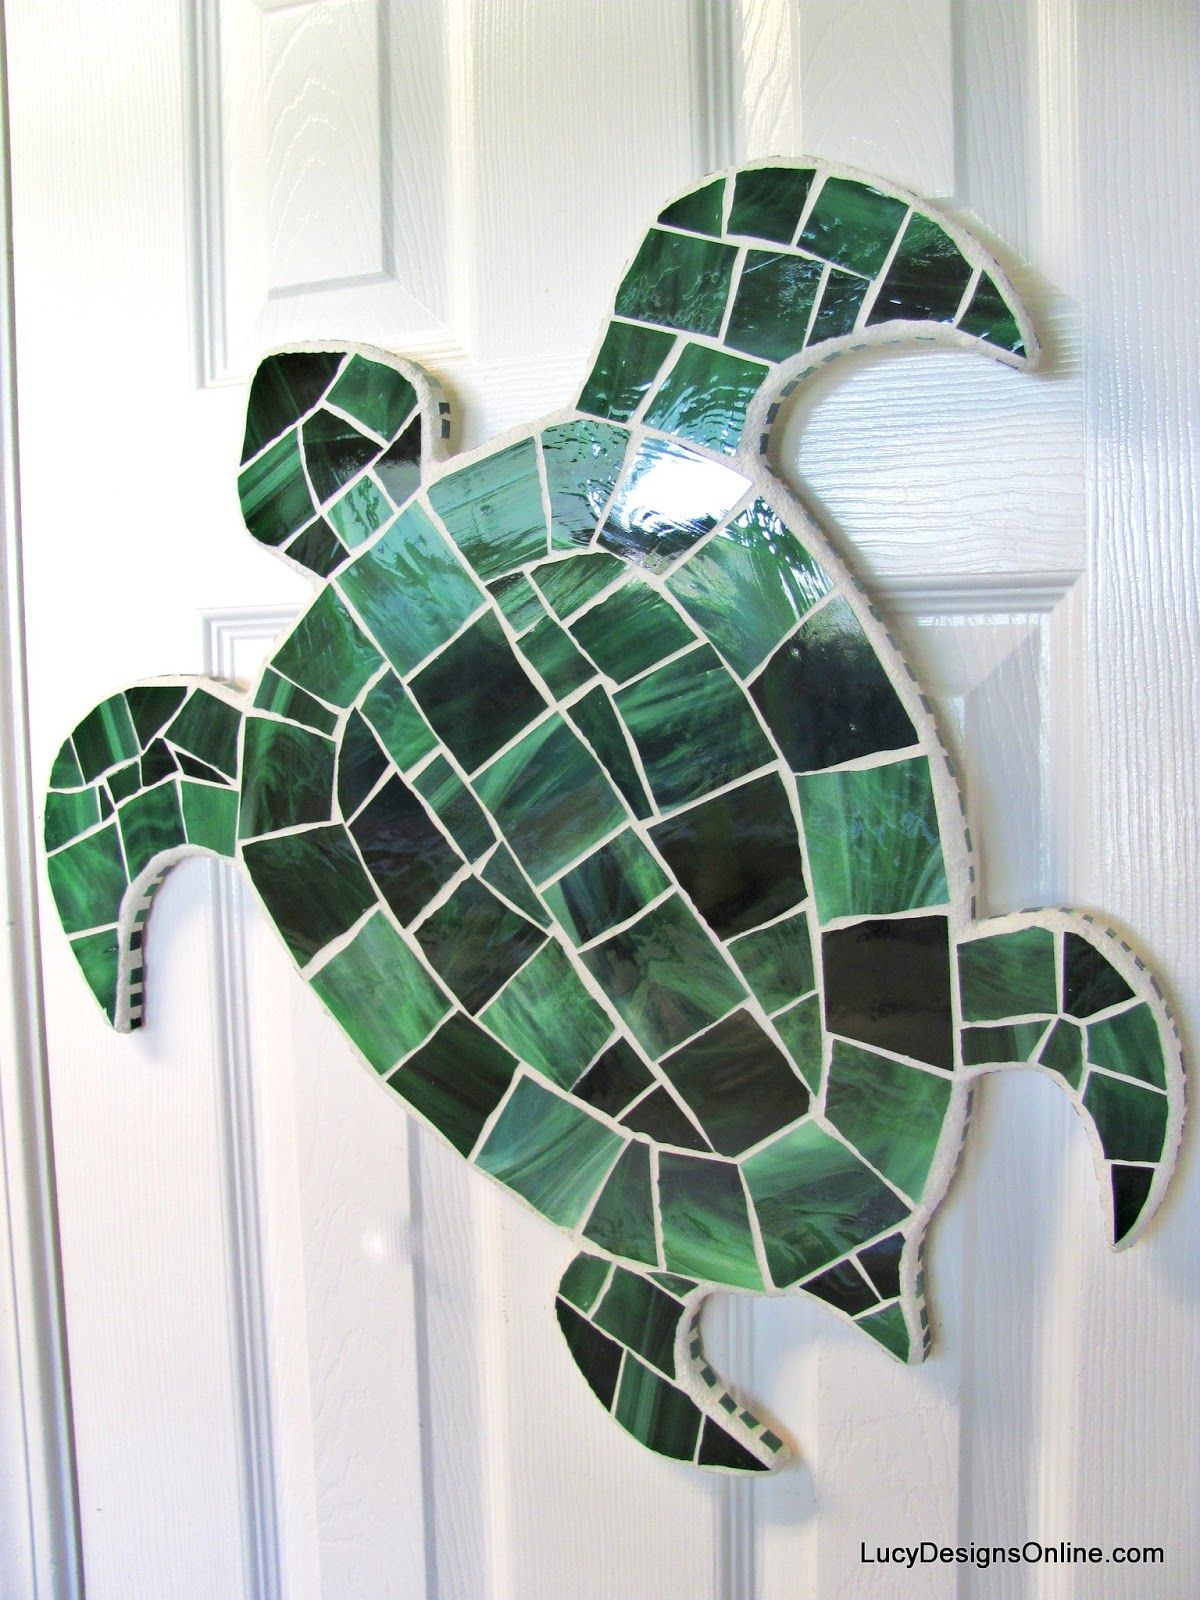 Sea Turtle Bathroom Accessories Stained Glass And Seashell Mosaic Sea Creatures Octopus